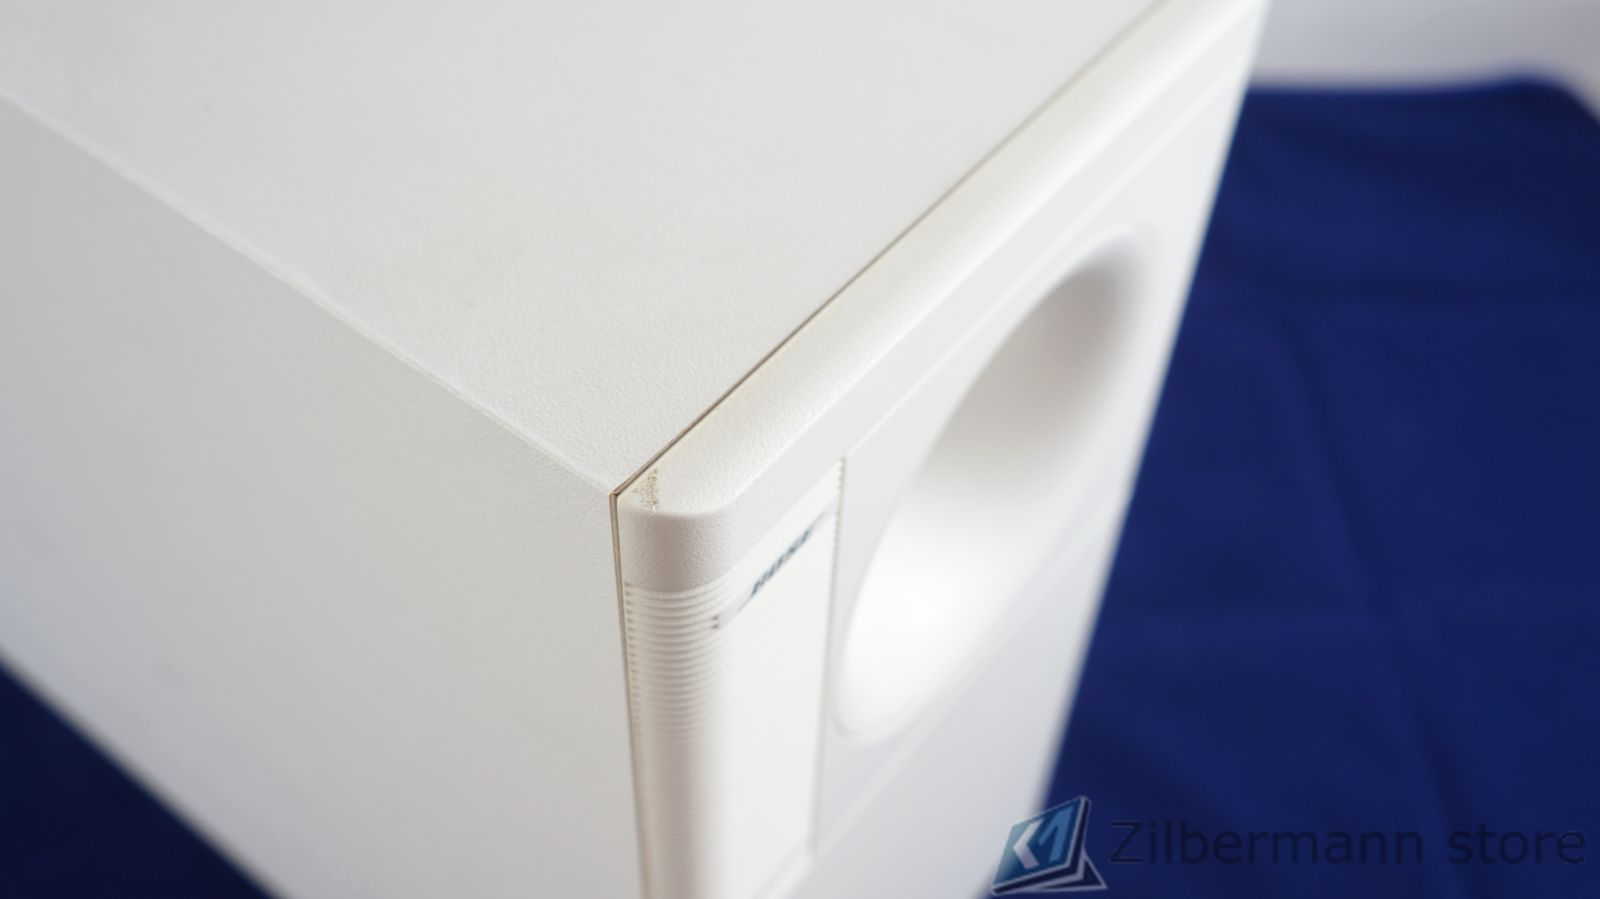 Bose_Acoustimass_25_Subwoofer_Weiss_03